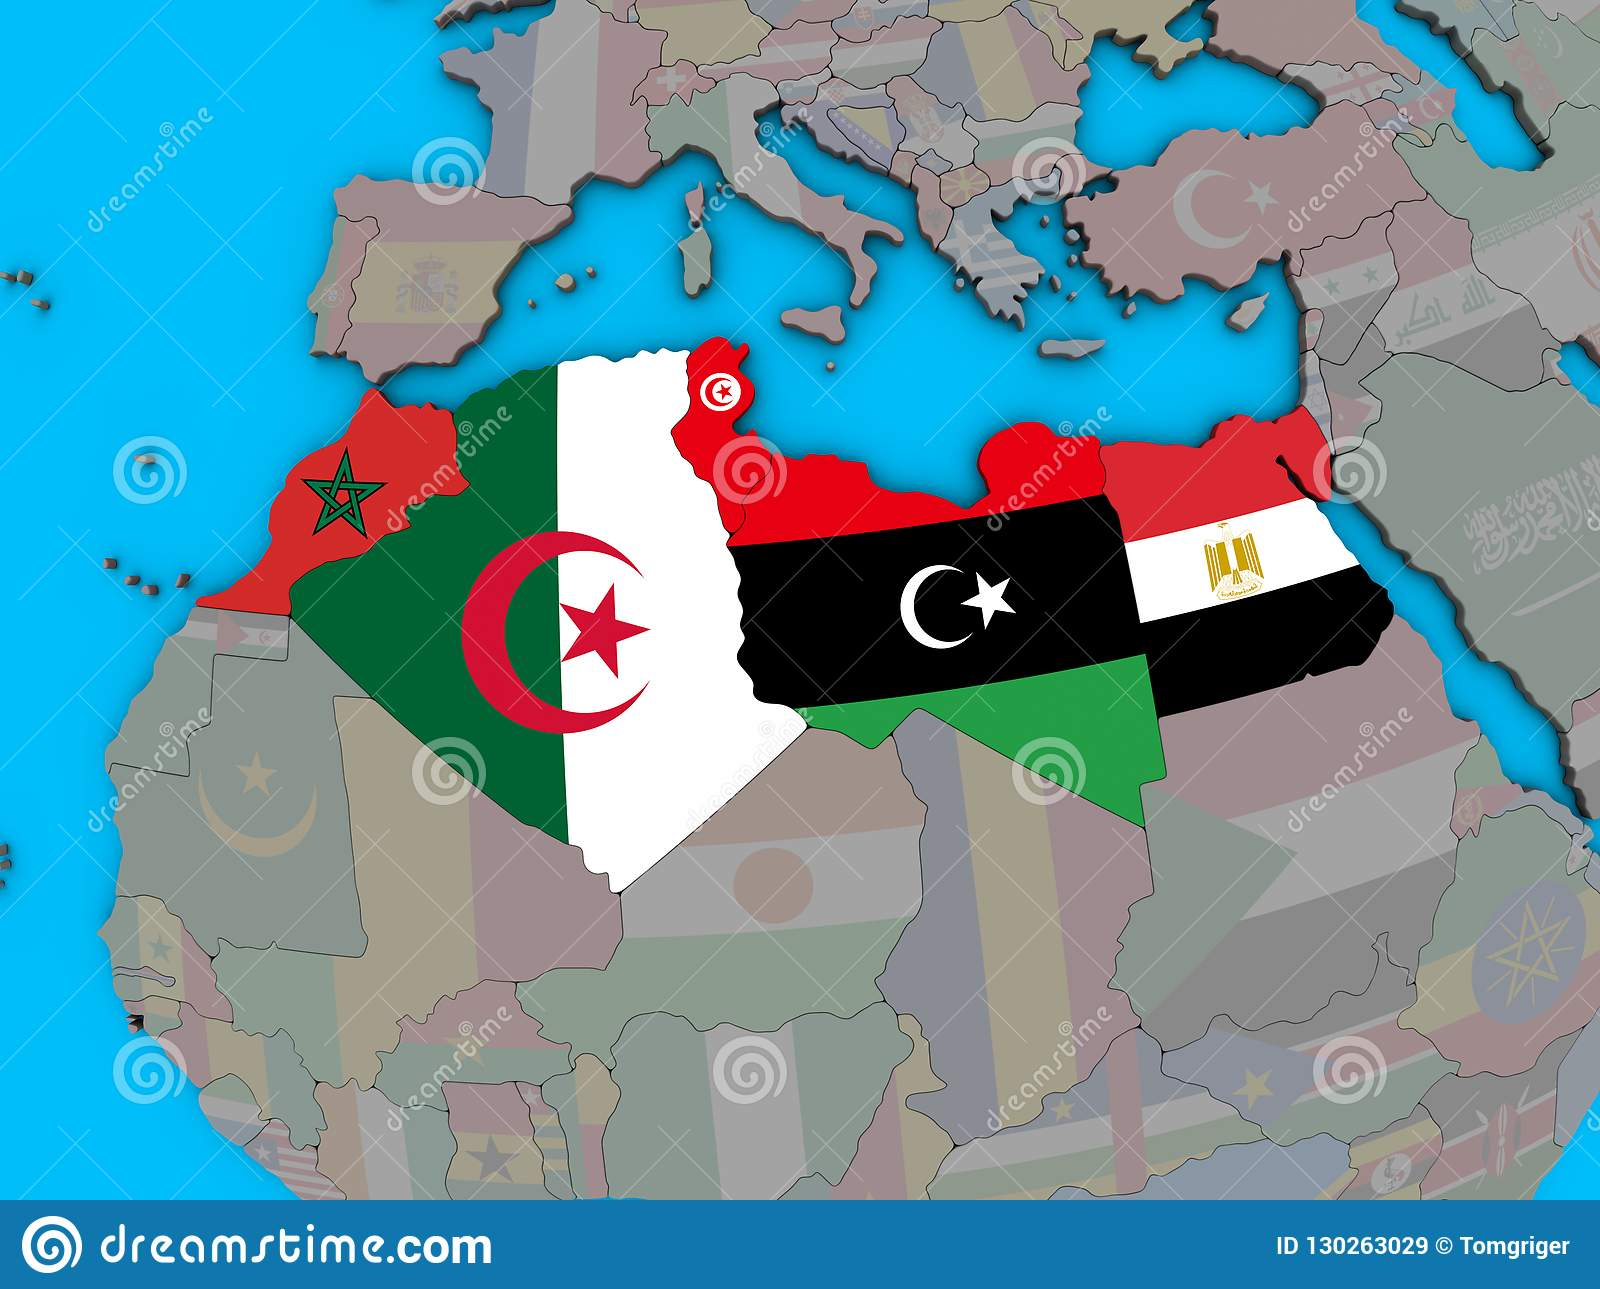 Map Of Africa With Flags.North Africa With Flags On 3d Map Stock Illustration Illustration